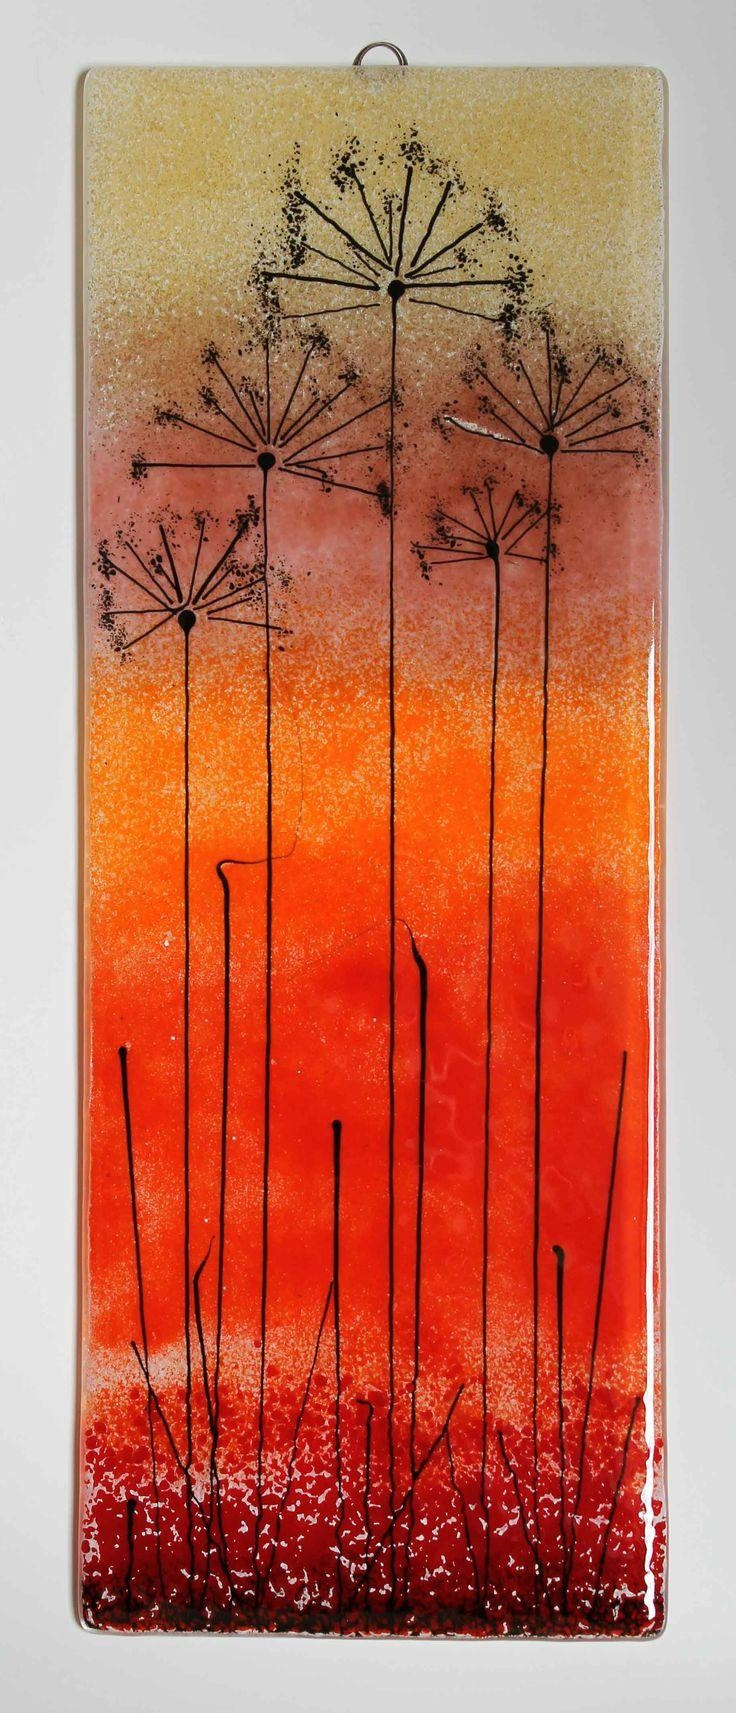 1914 Best Fused Glass – Artsy Fartsy Images On Pinterest | Stained Inside Contemporary Fused Glass Wall Art (View 14 of 20)